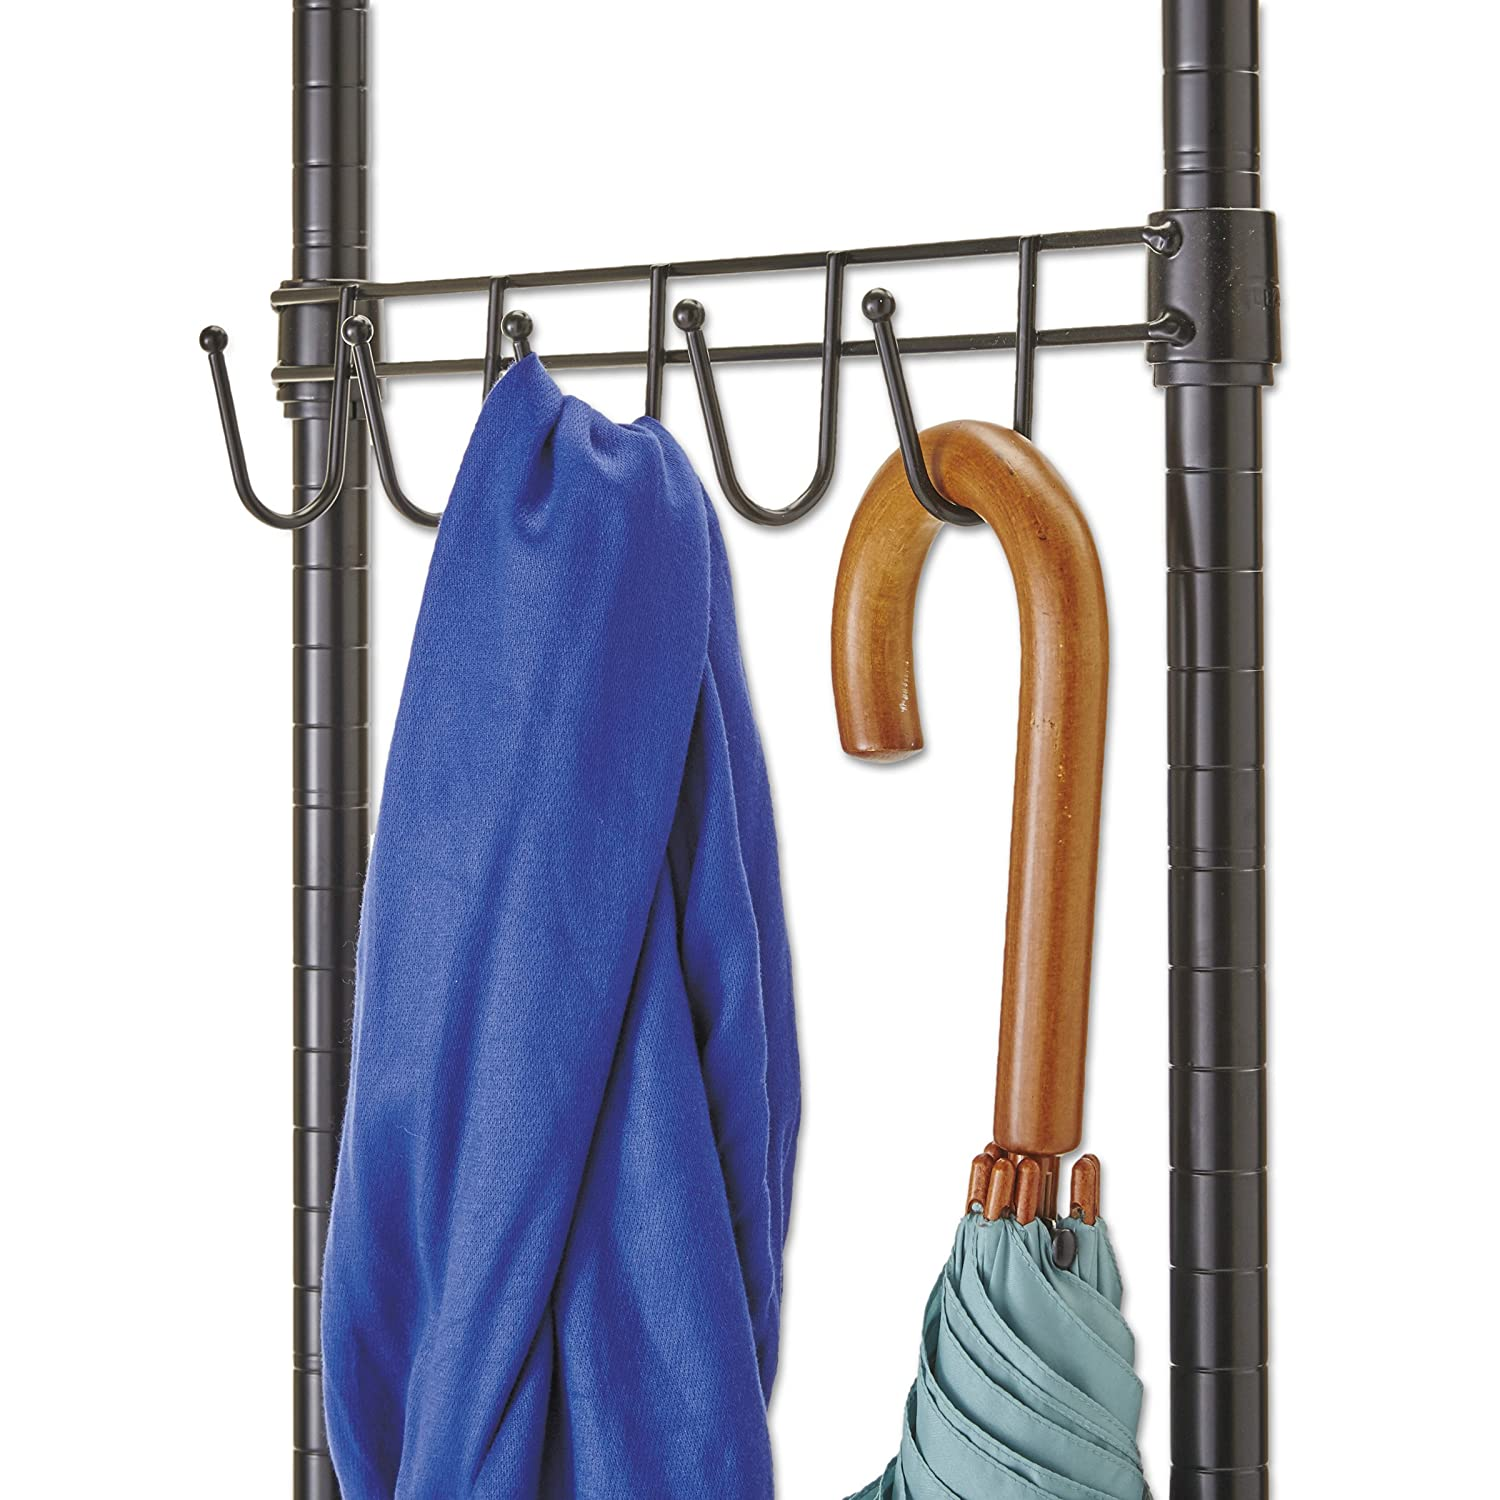 Alera Wire Shelving Garment Rack//Coat Rack//Stand Alone Rack Black Steel with Casters